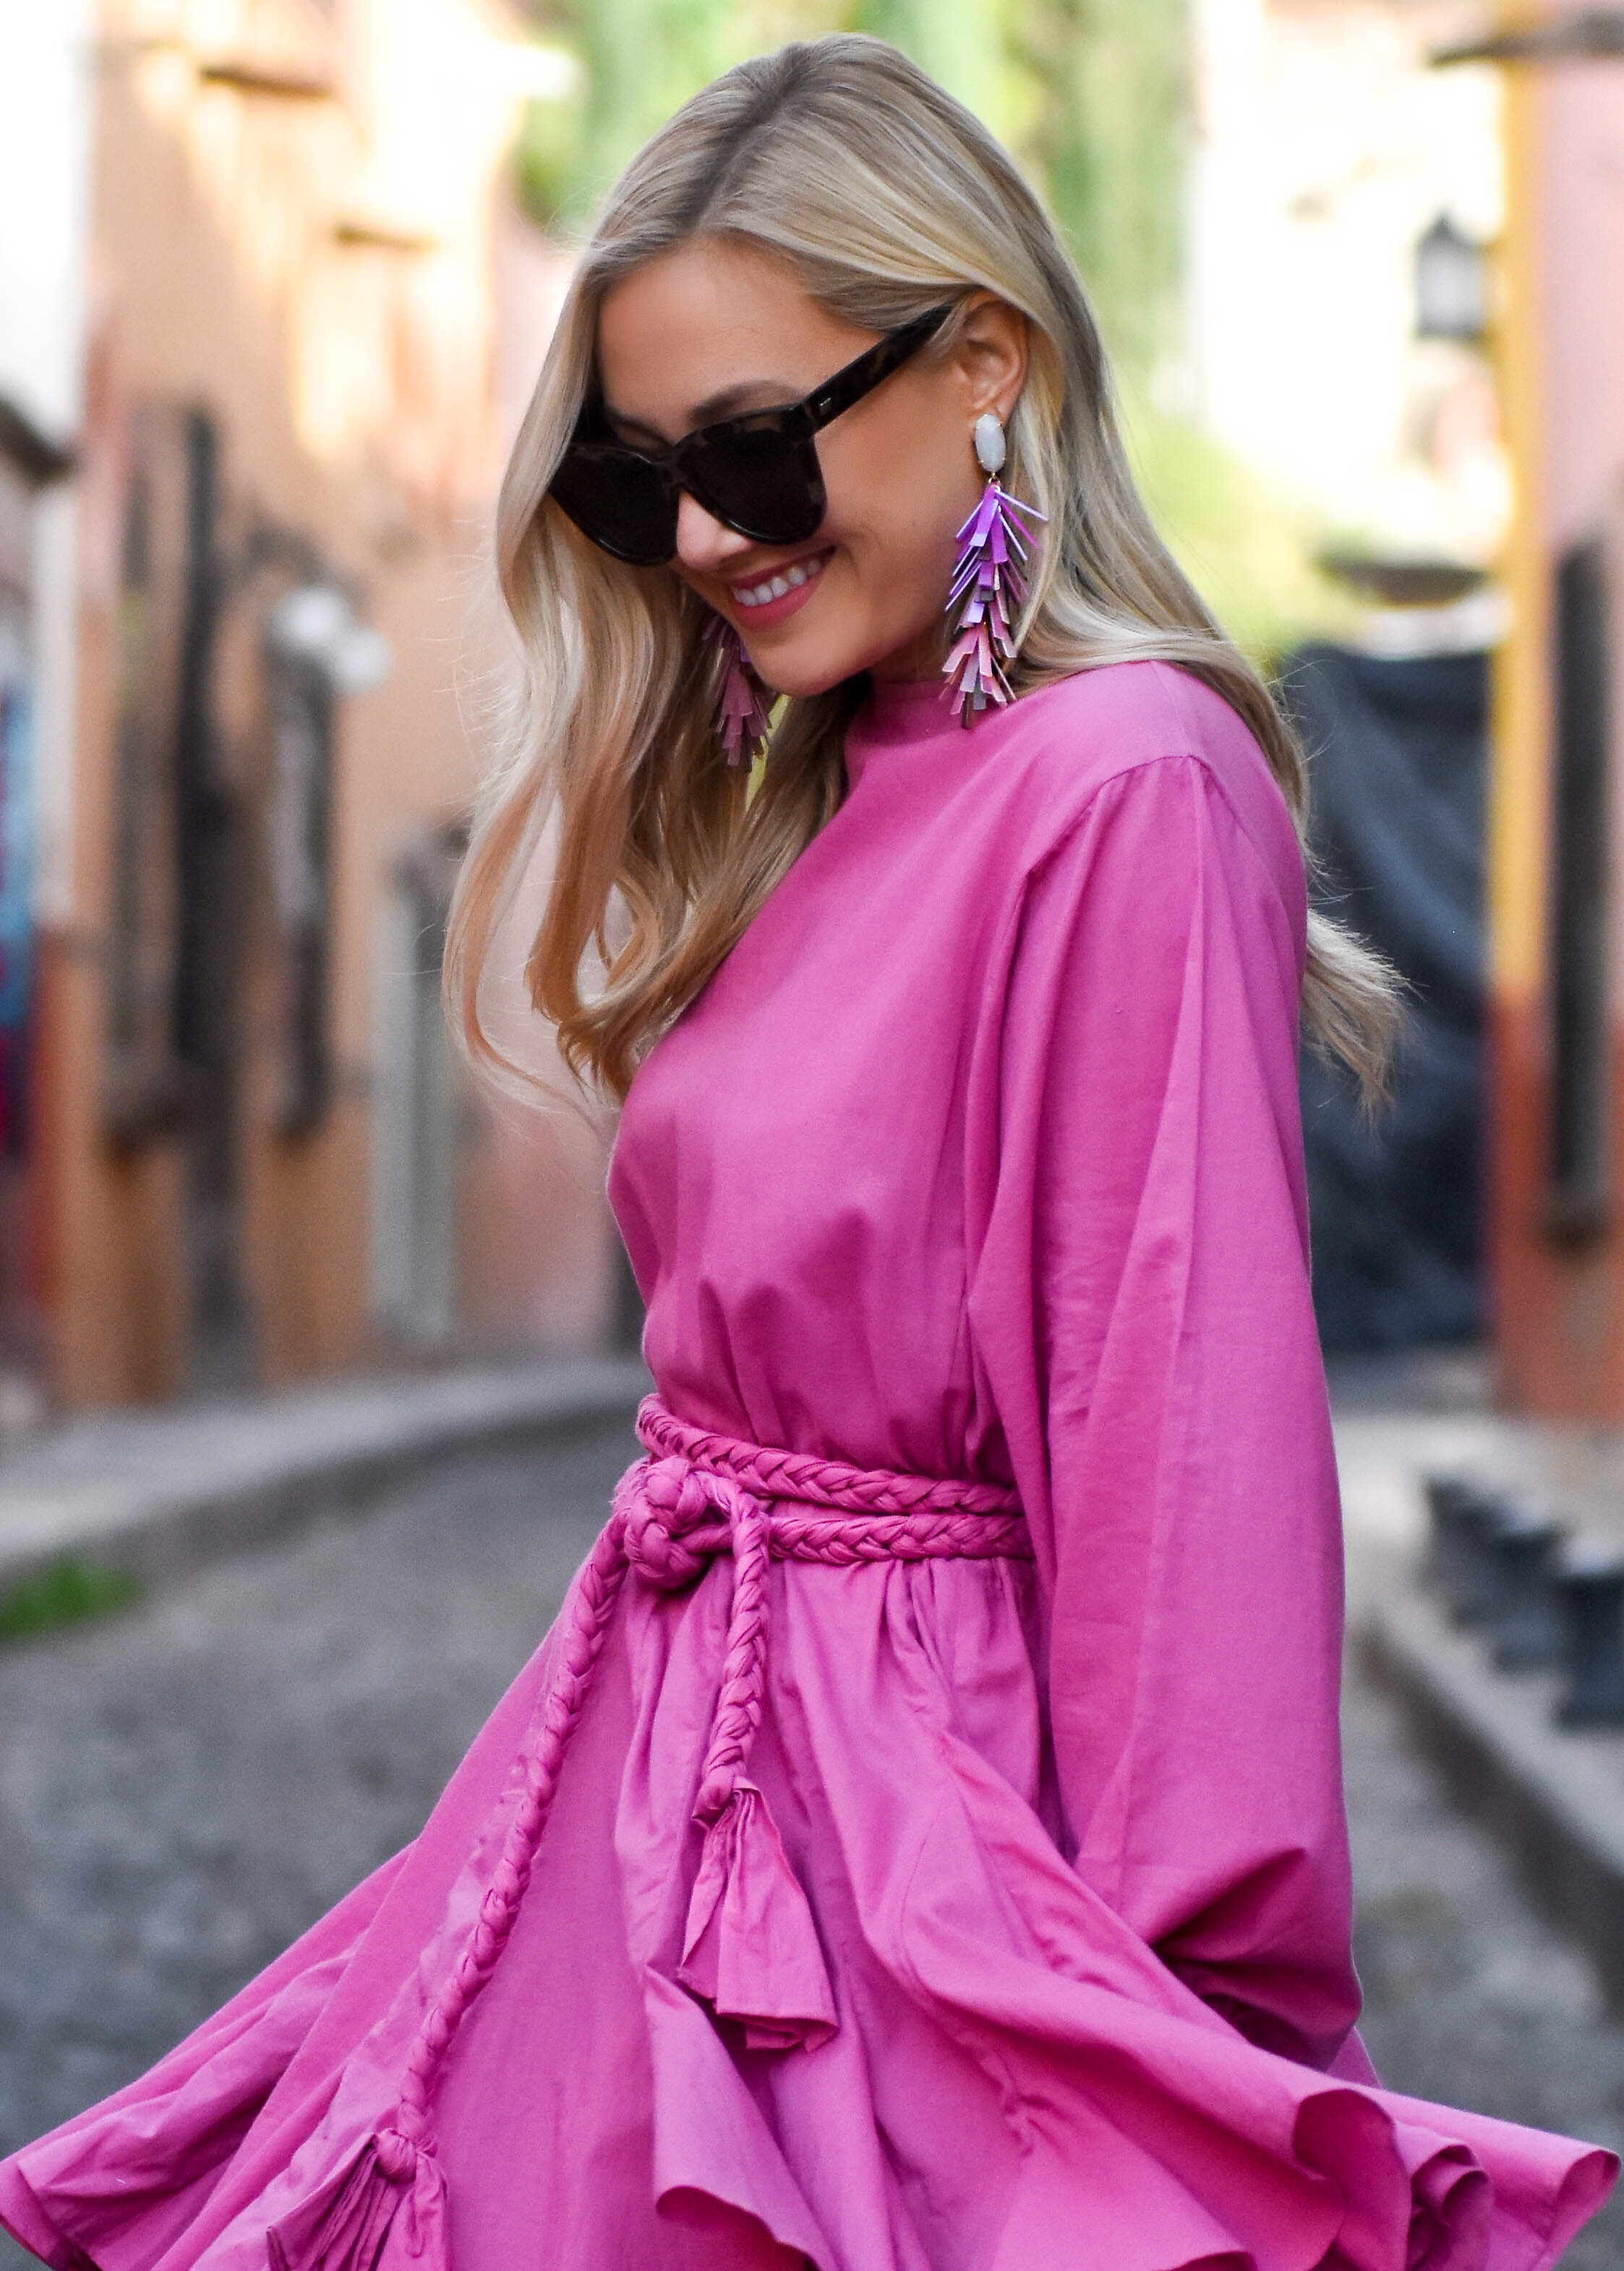 Kendra Scott, Kendra Scott Earrings, Dallas Blogger, Fashion Blogger, Travel Blogger, Mexico, Cult Gaia, Le Specs Sunglasses, Kendra Scott Justyne Statement Earrings, Schutz Heels, Lo Murphy, LoMurph